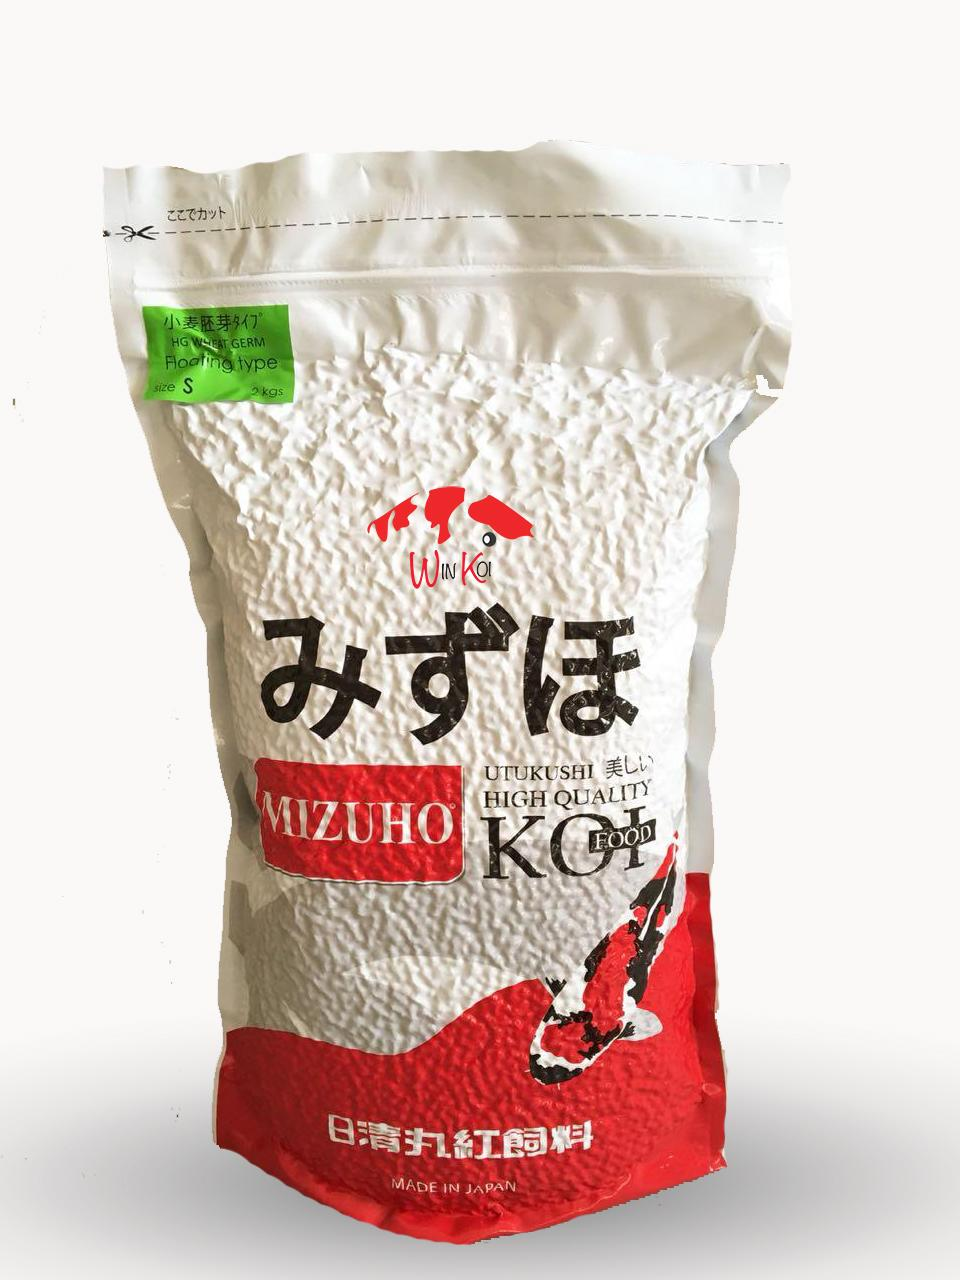 Mizuho Hg Wheatgerm (size S) Premium Koi Food Made In Japan / Pakan Koi / Makanan Ikan Koi Import By Winkoi.